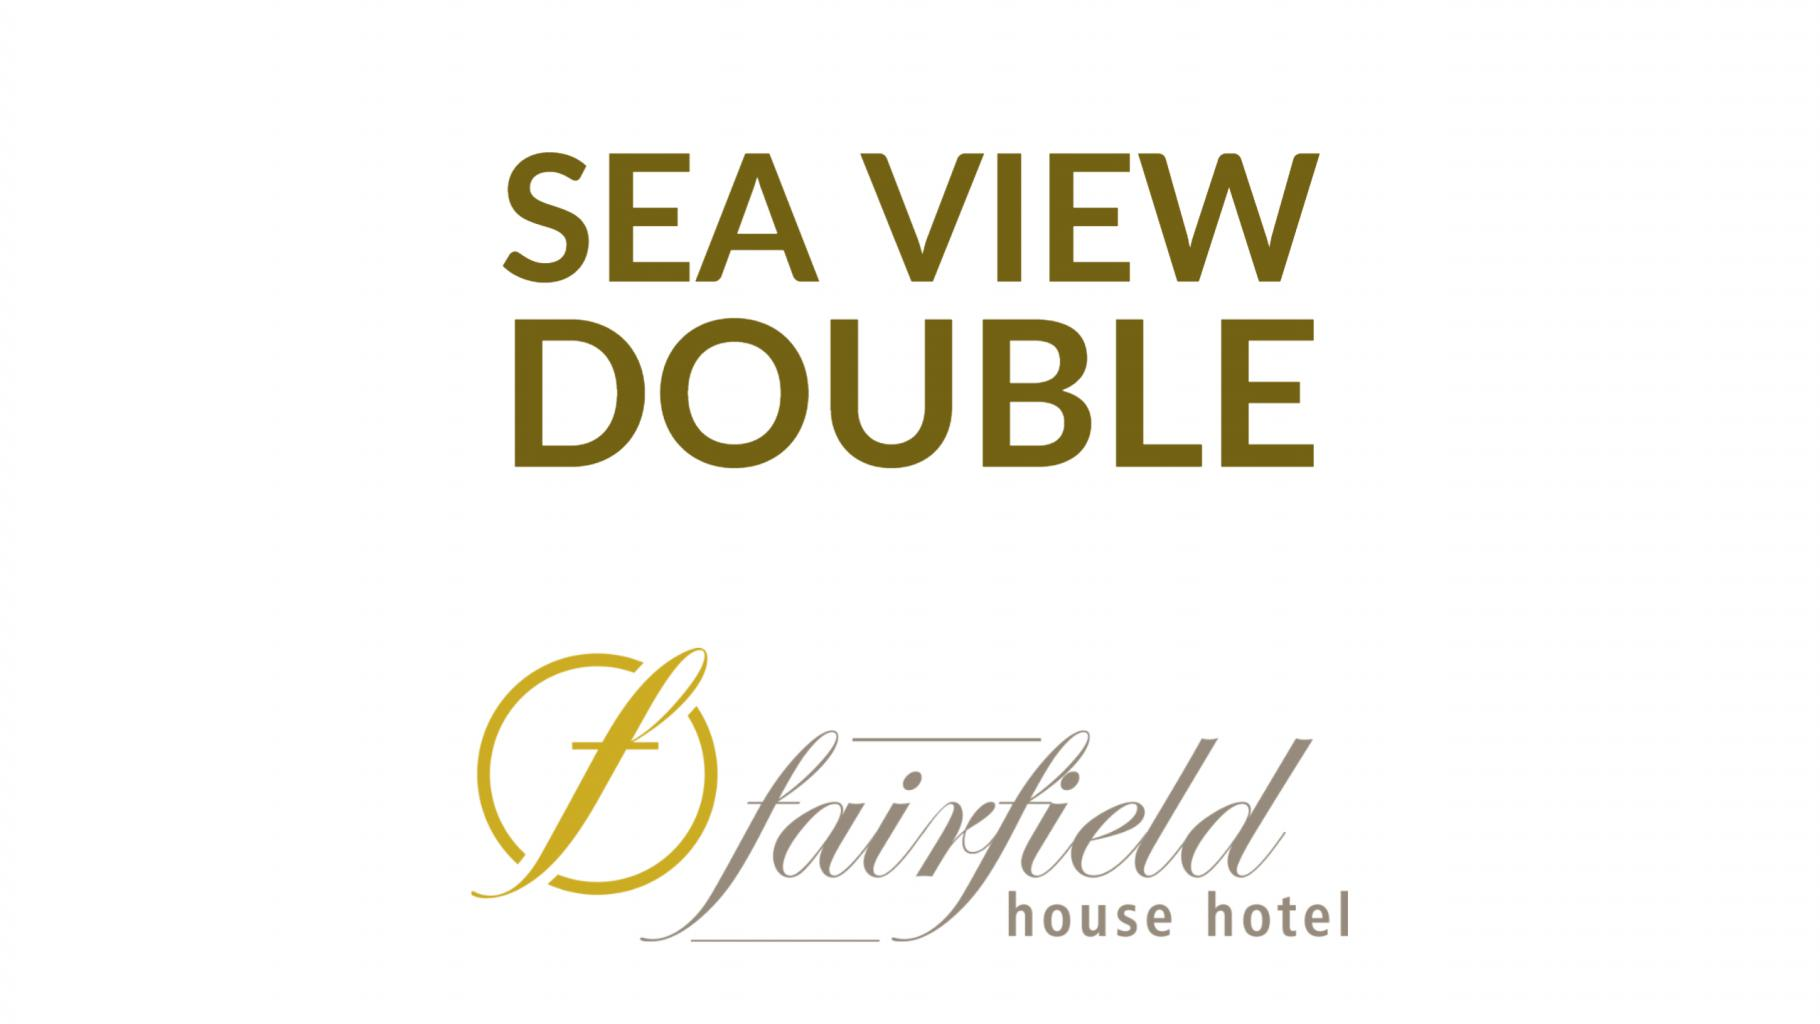 Fairfield boasts a number of gorgeous rooms with either full or partial sea views across the Firth of Clyde to Arran.